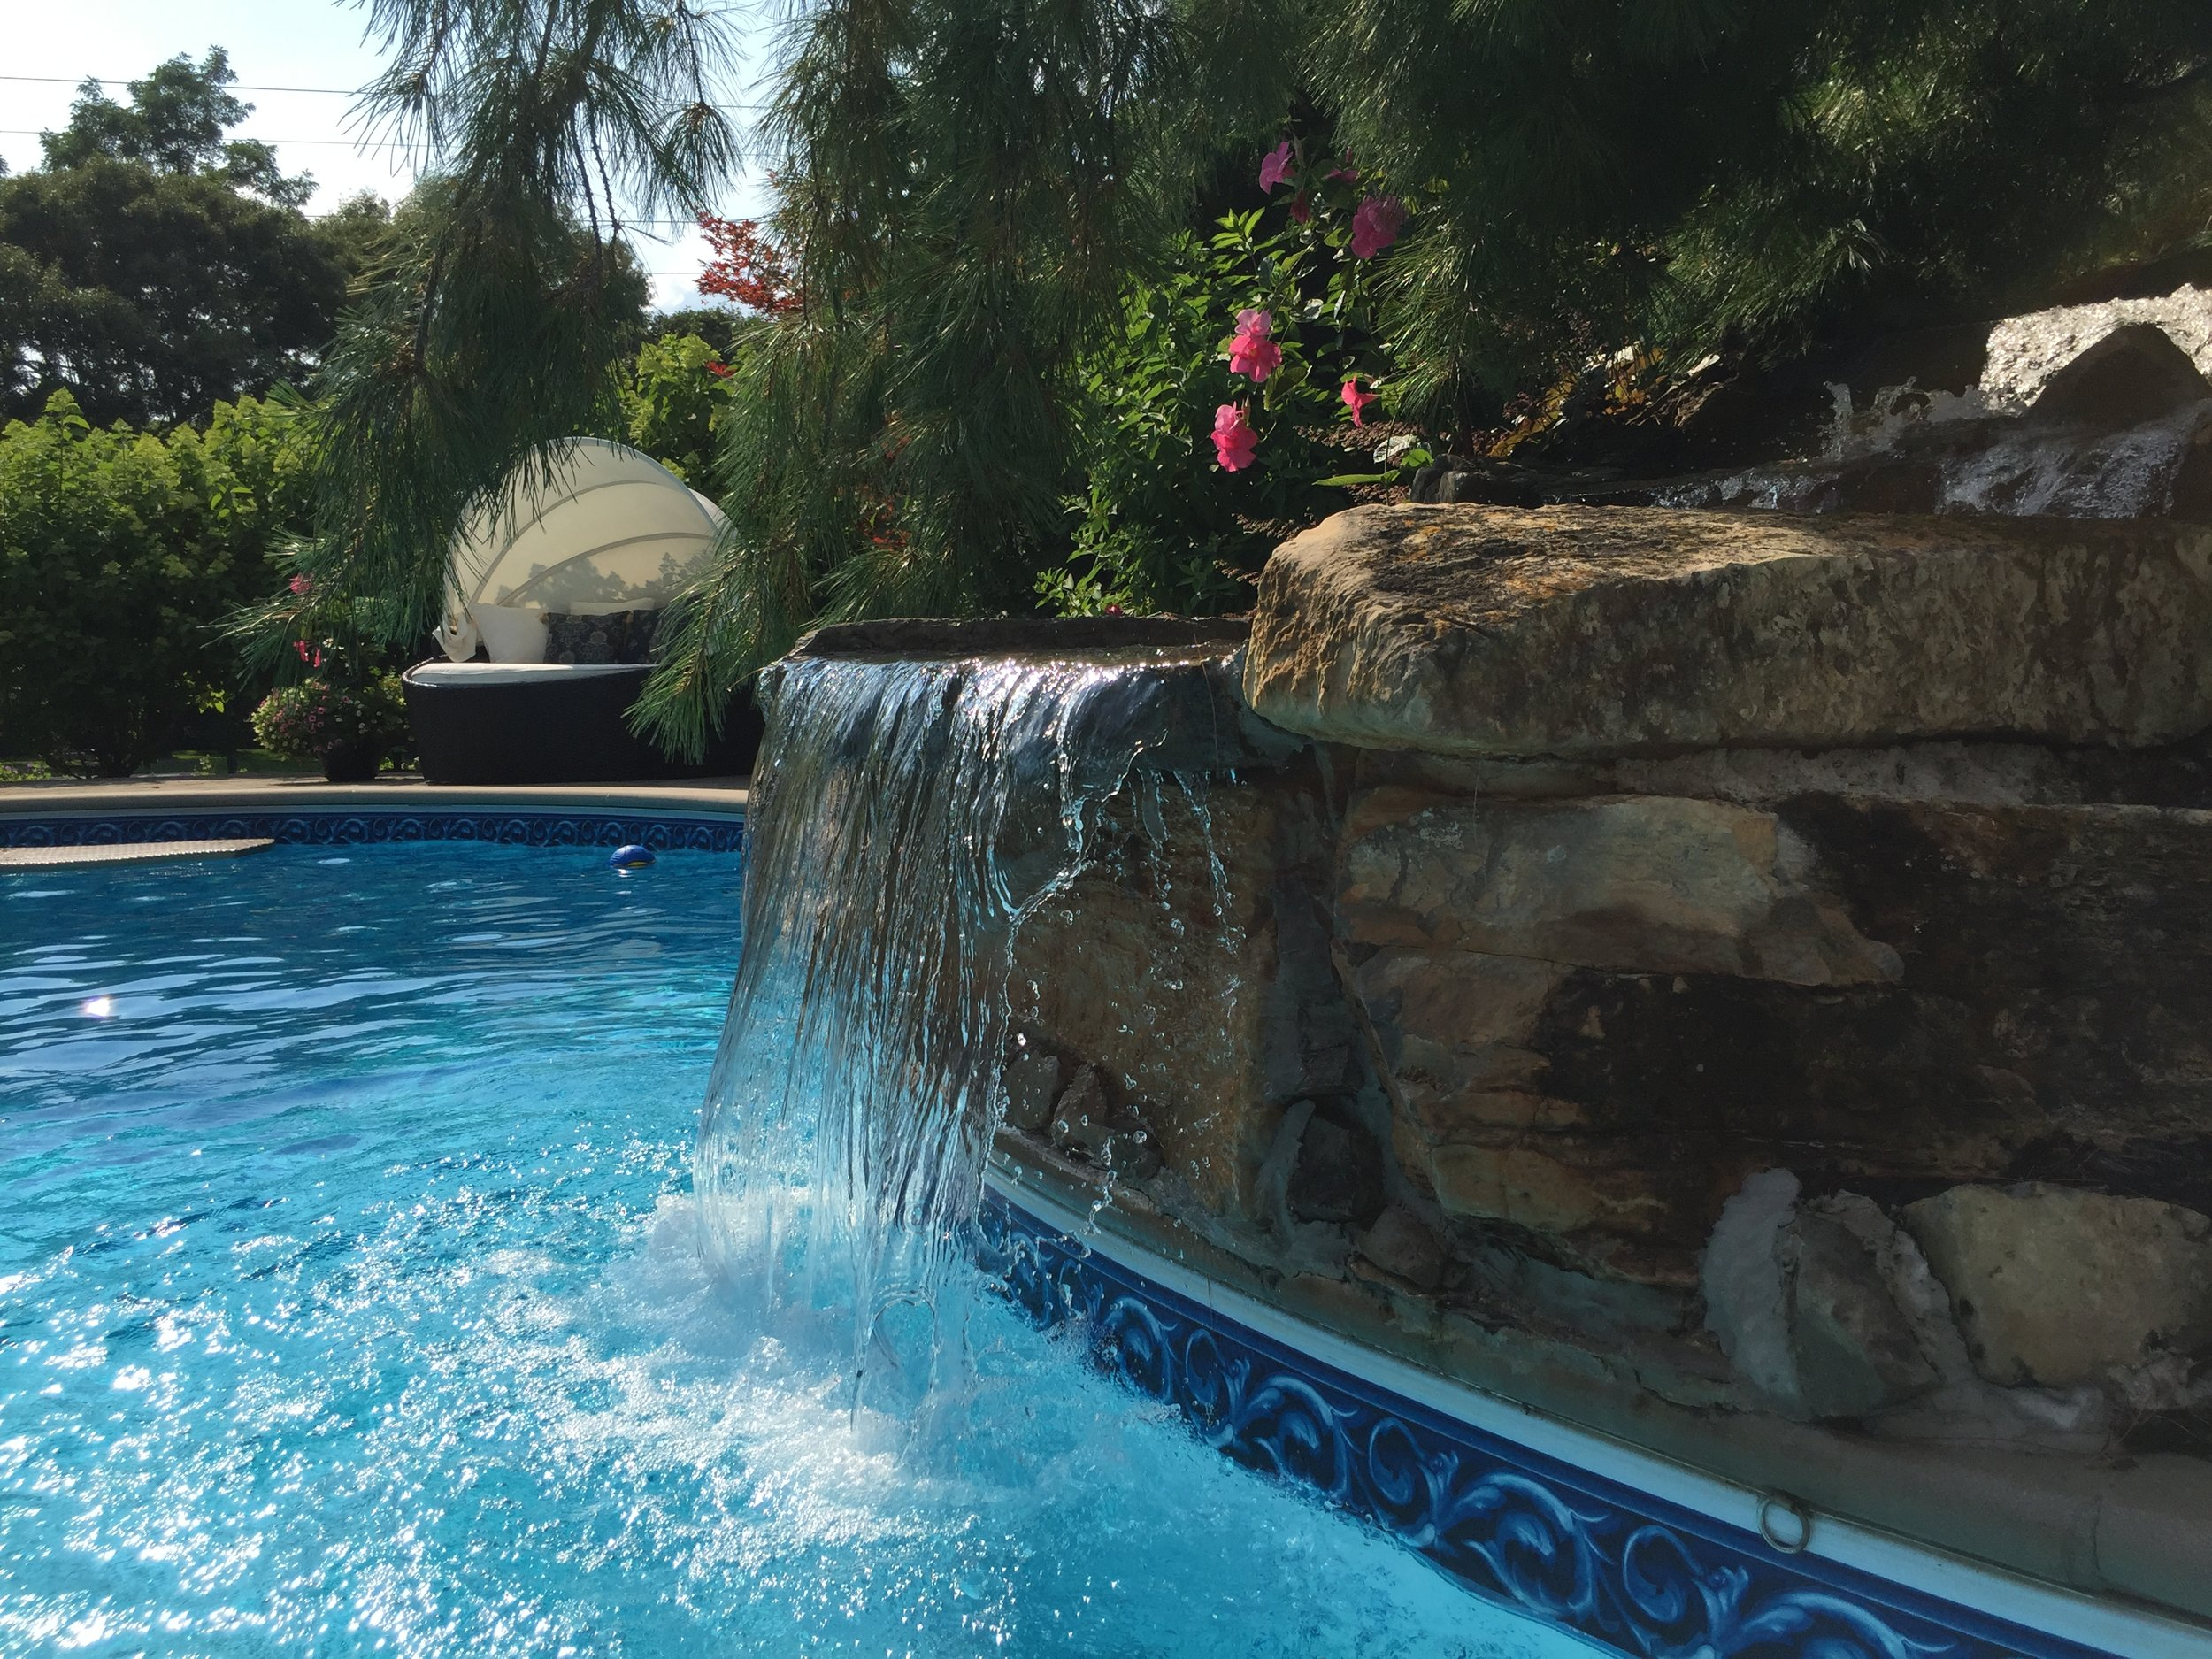 Professional pool waterfall landscape design company in Long Island, NY